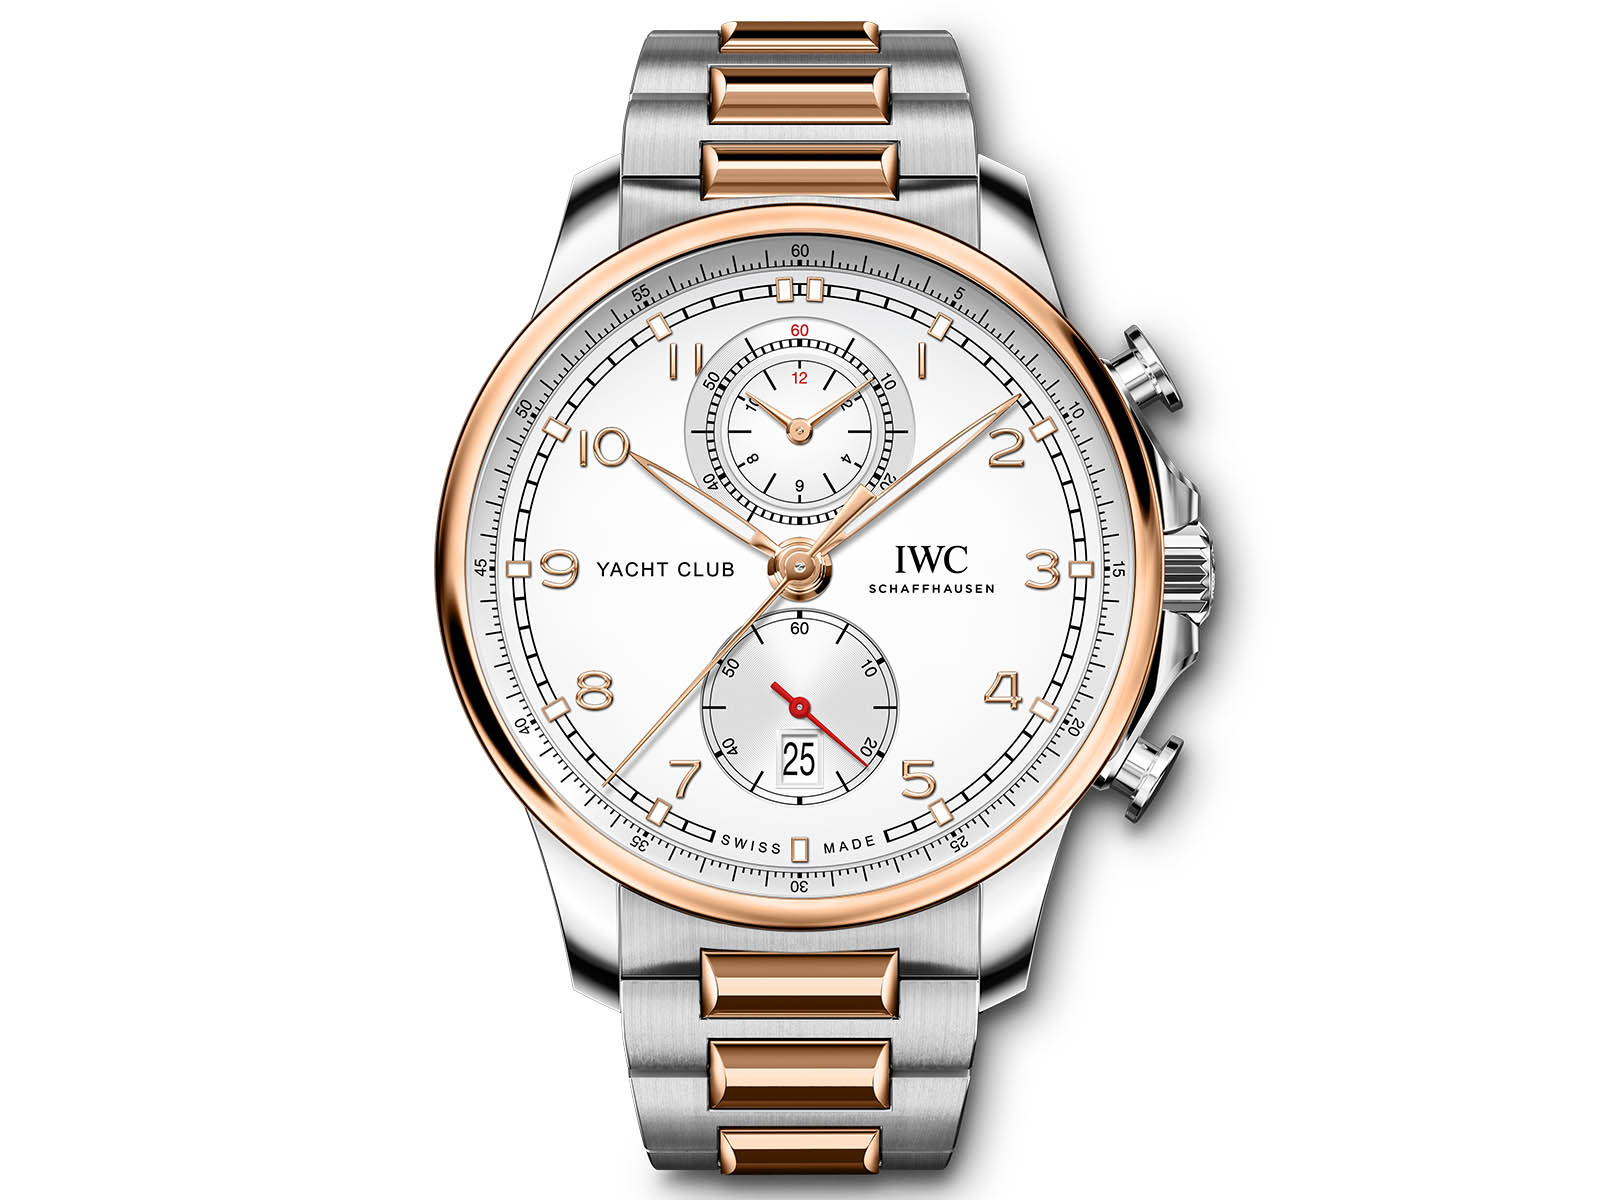 iw390703-iwc-schaffhausen-portugieser-yacht-club-moon-tide-and-chronograph-watches-wonders-2020-1.jpg